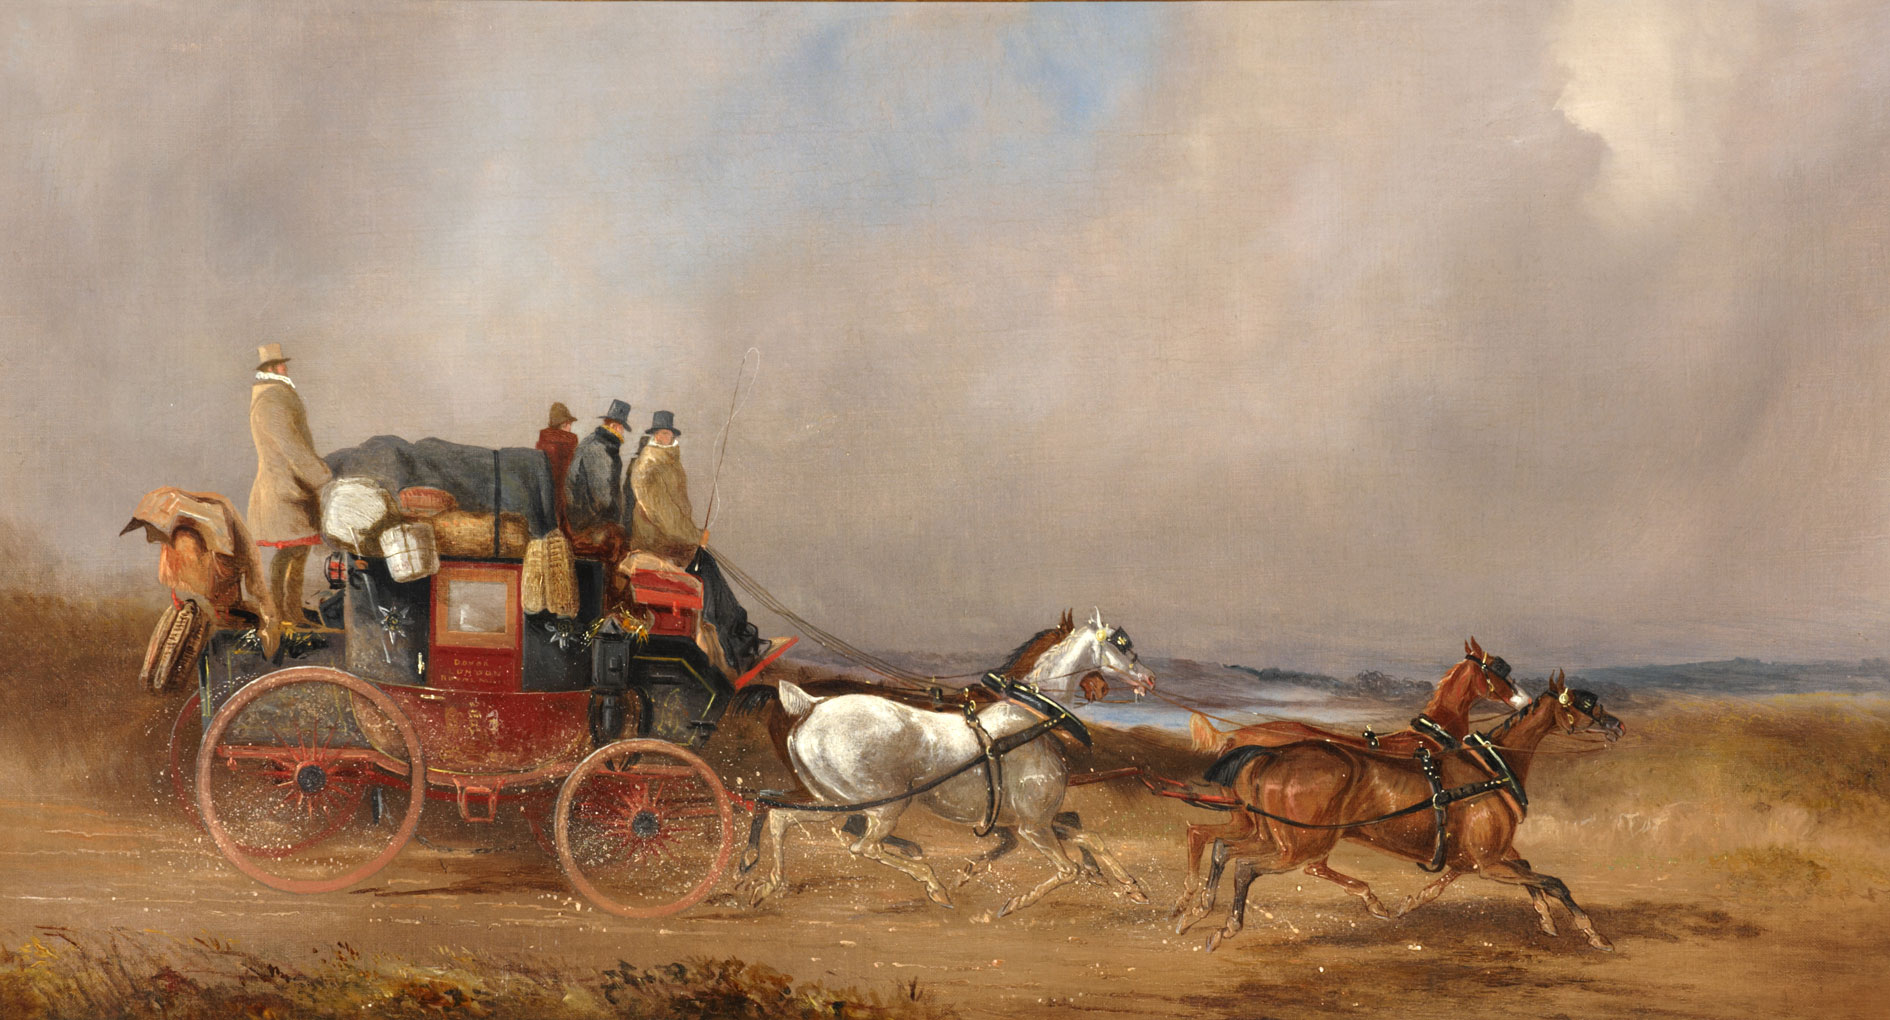 OB1996.17 'The Dover to London Royal Mail on the Open Road' by Charles Cooper Henderson